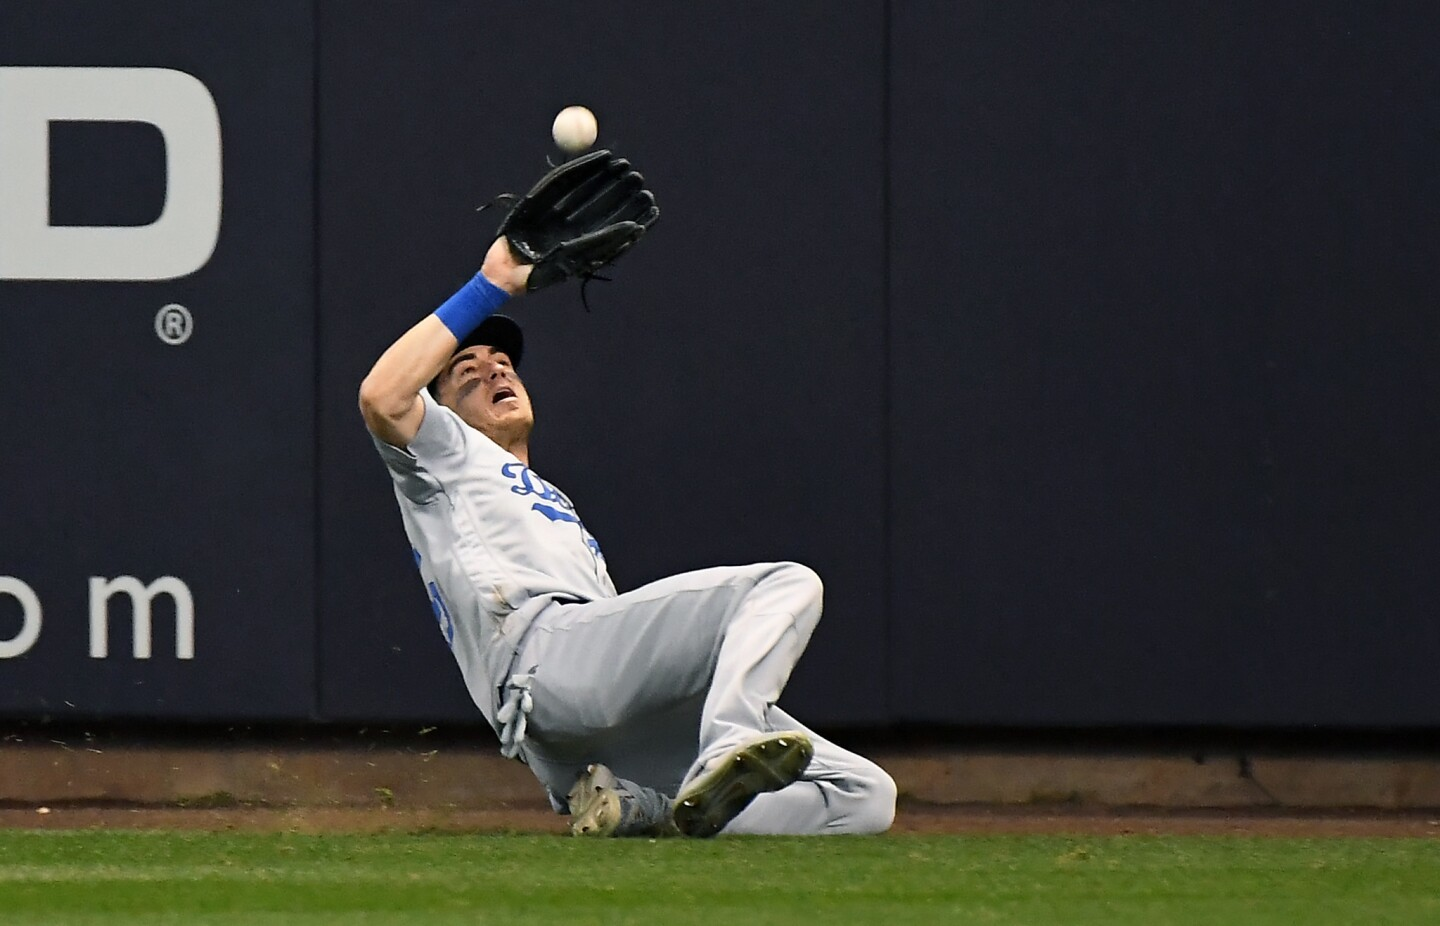 Dodgers Cody Bellinger makes a sliding catch off the bat of Brewers Ryan Braun in the 8th inning.